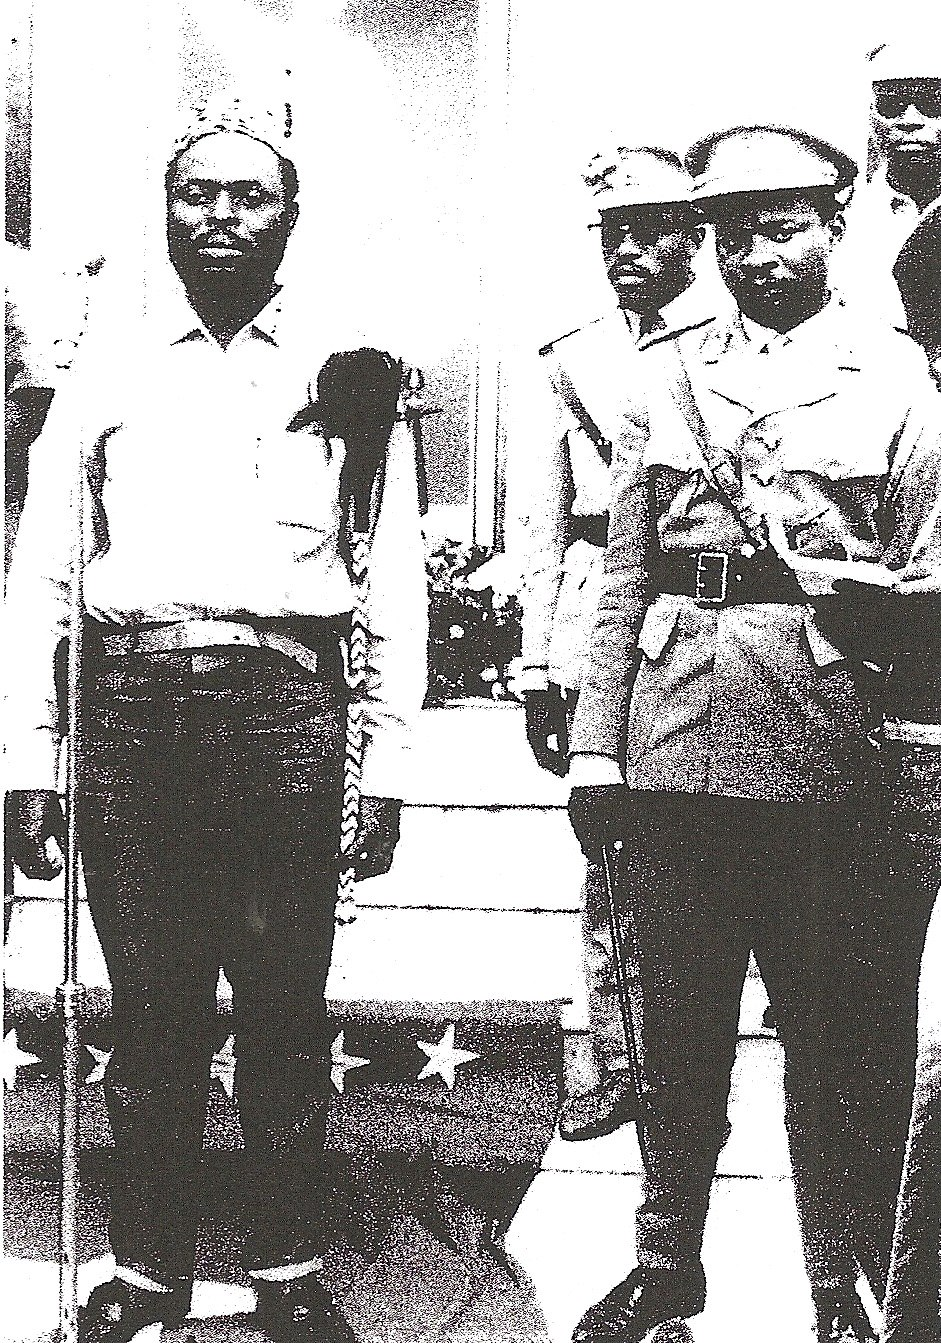 Christophe Gbenye as President of the People's Republic of the Congo with General Nicholas Olenga